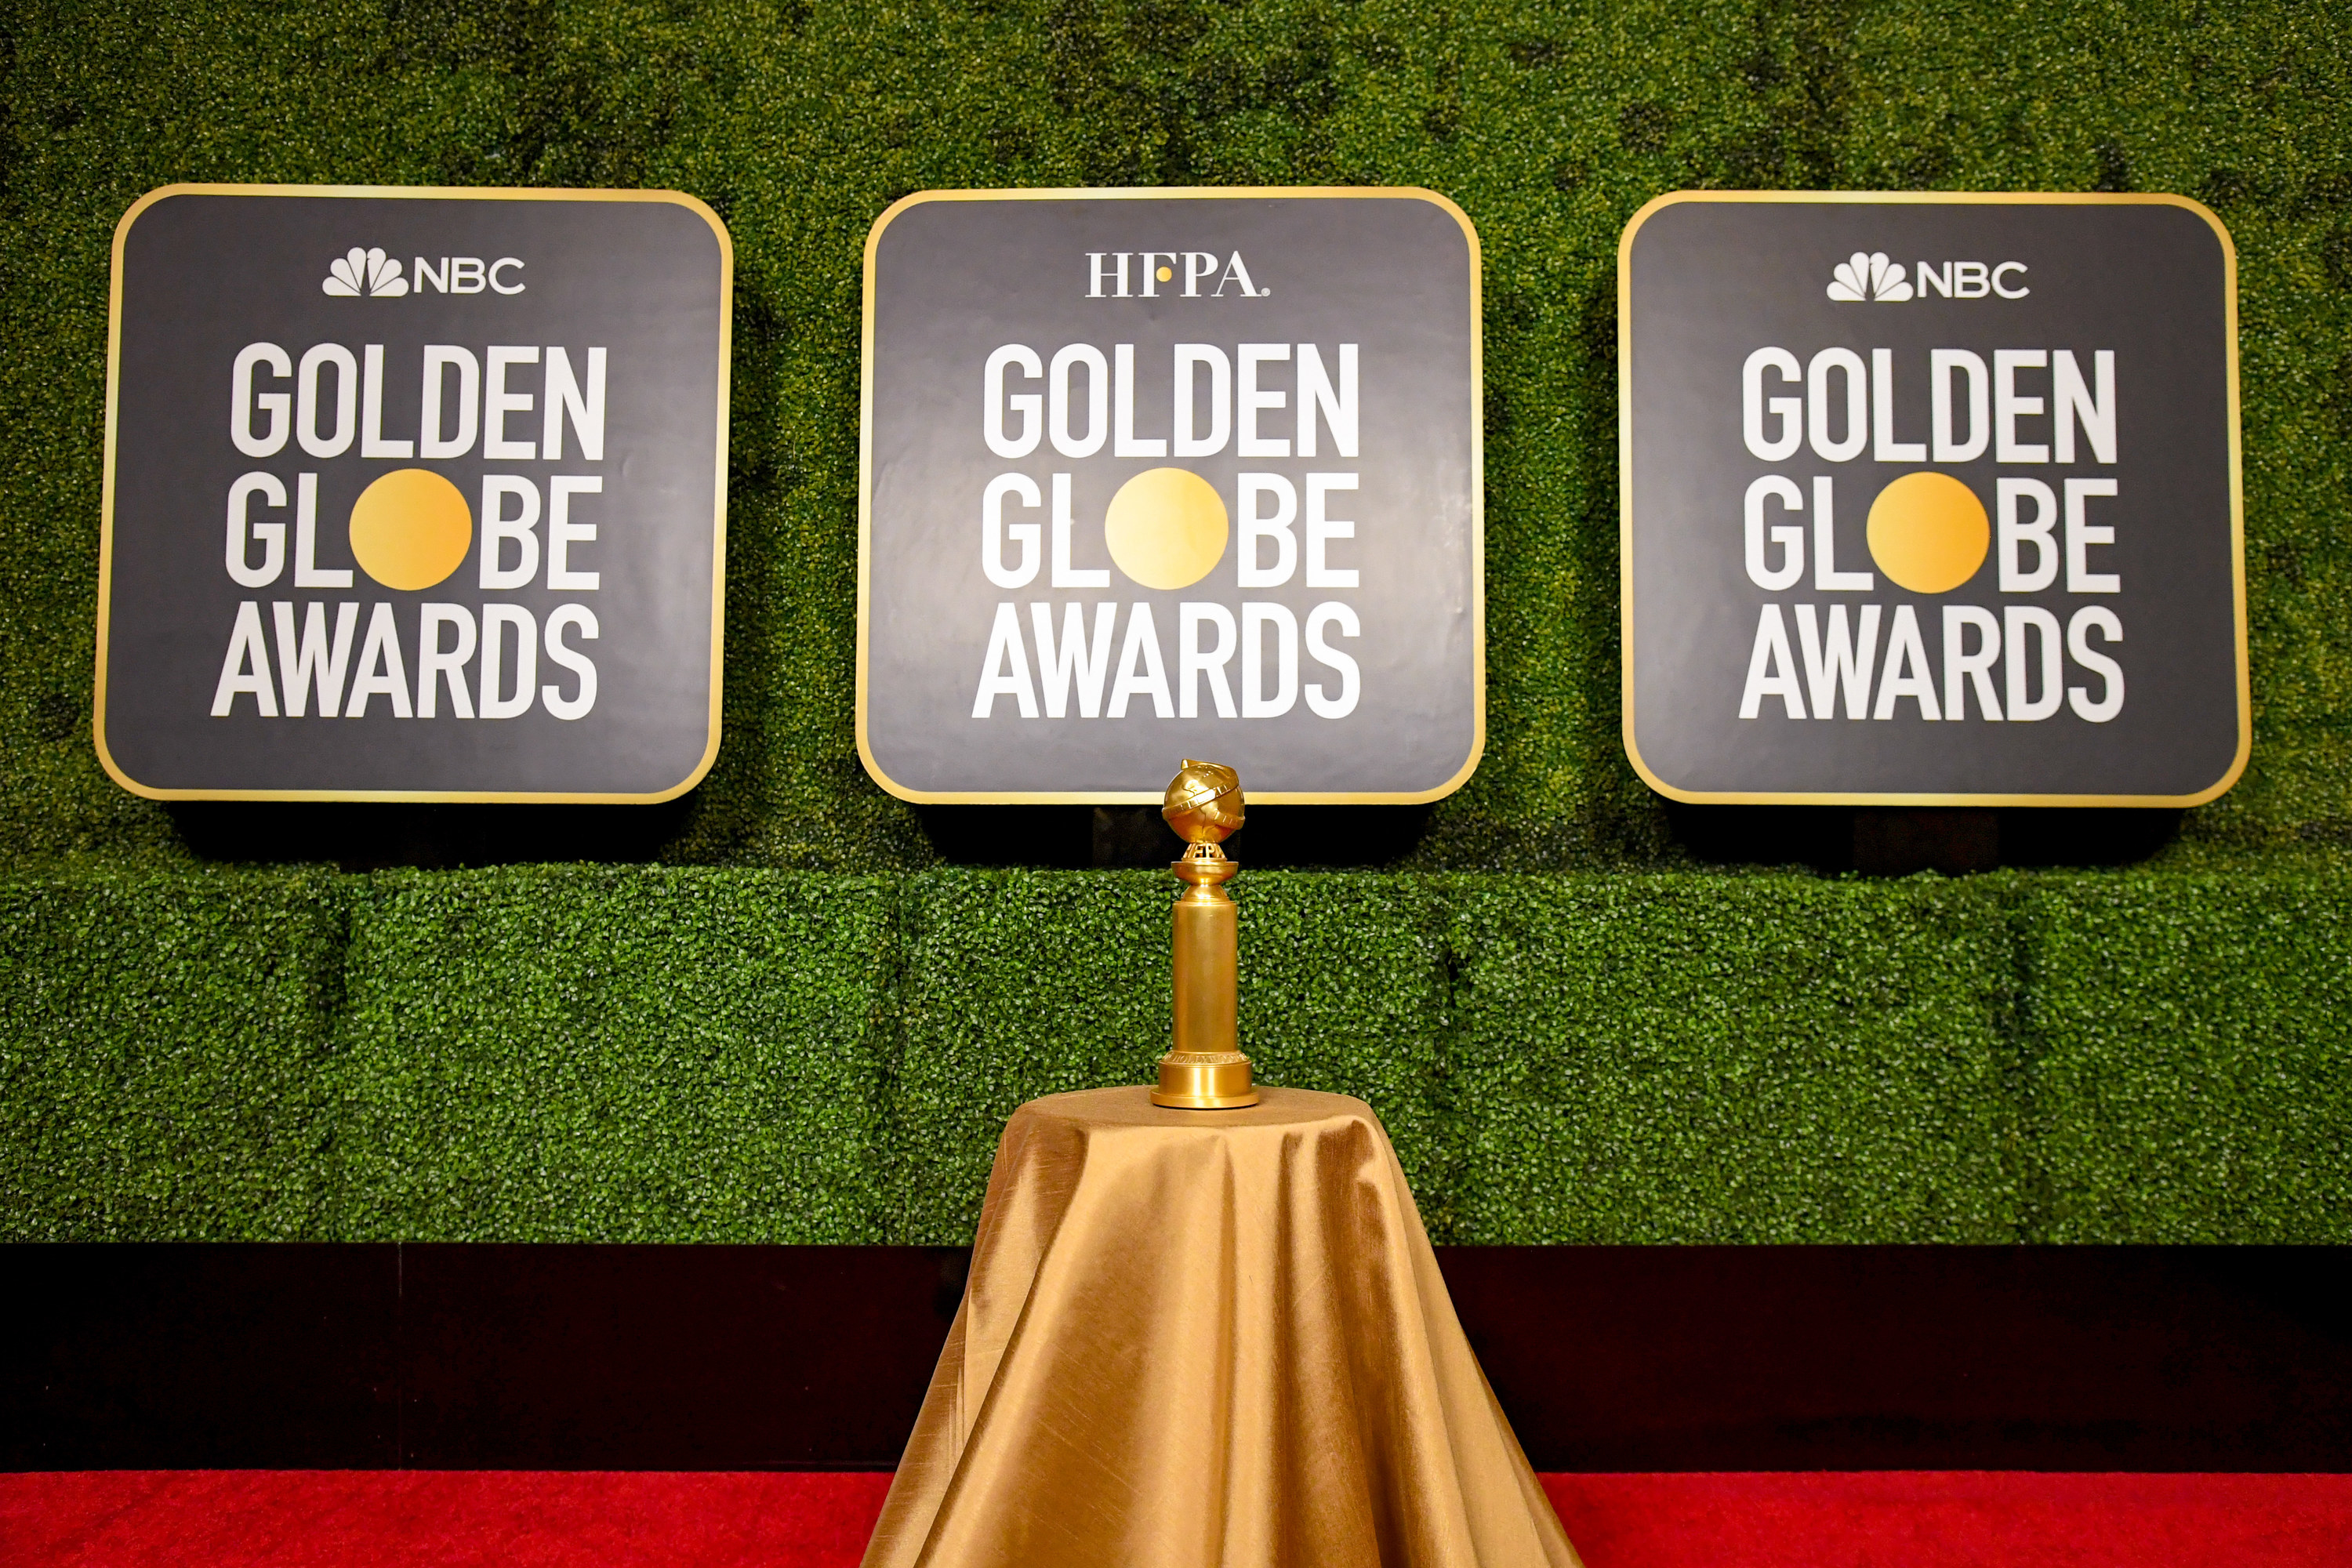 The Golden Globe Trophy on the red carpet